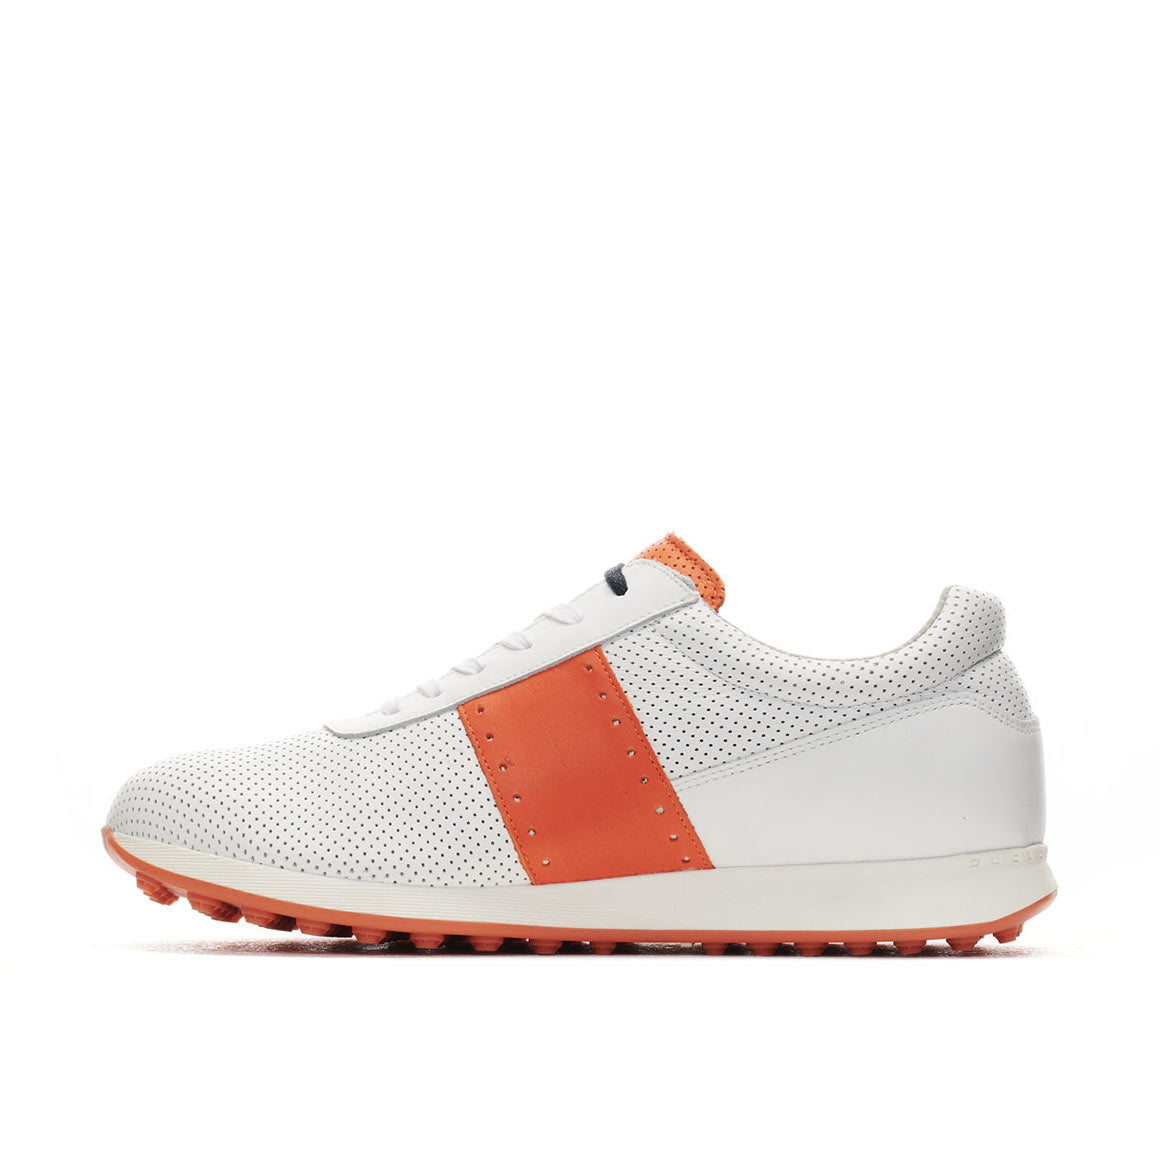 Men's Belair White Golf Shoe